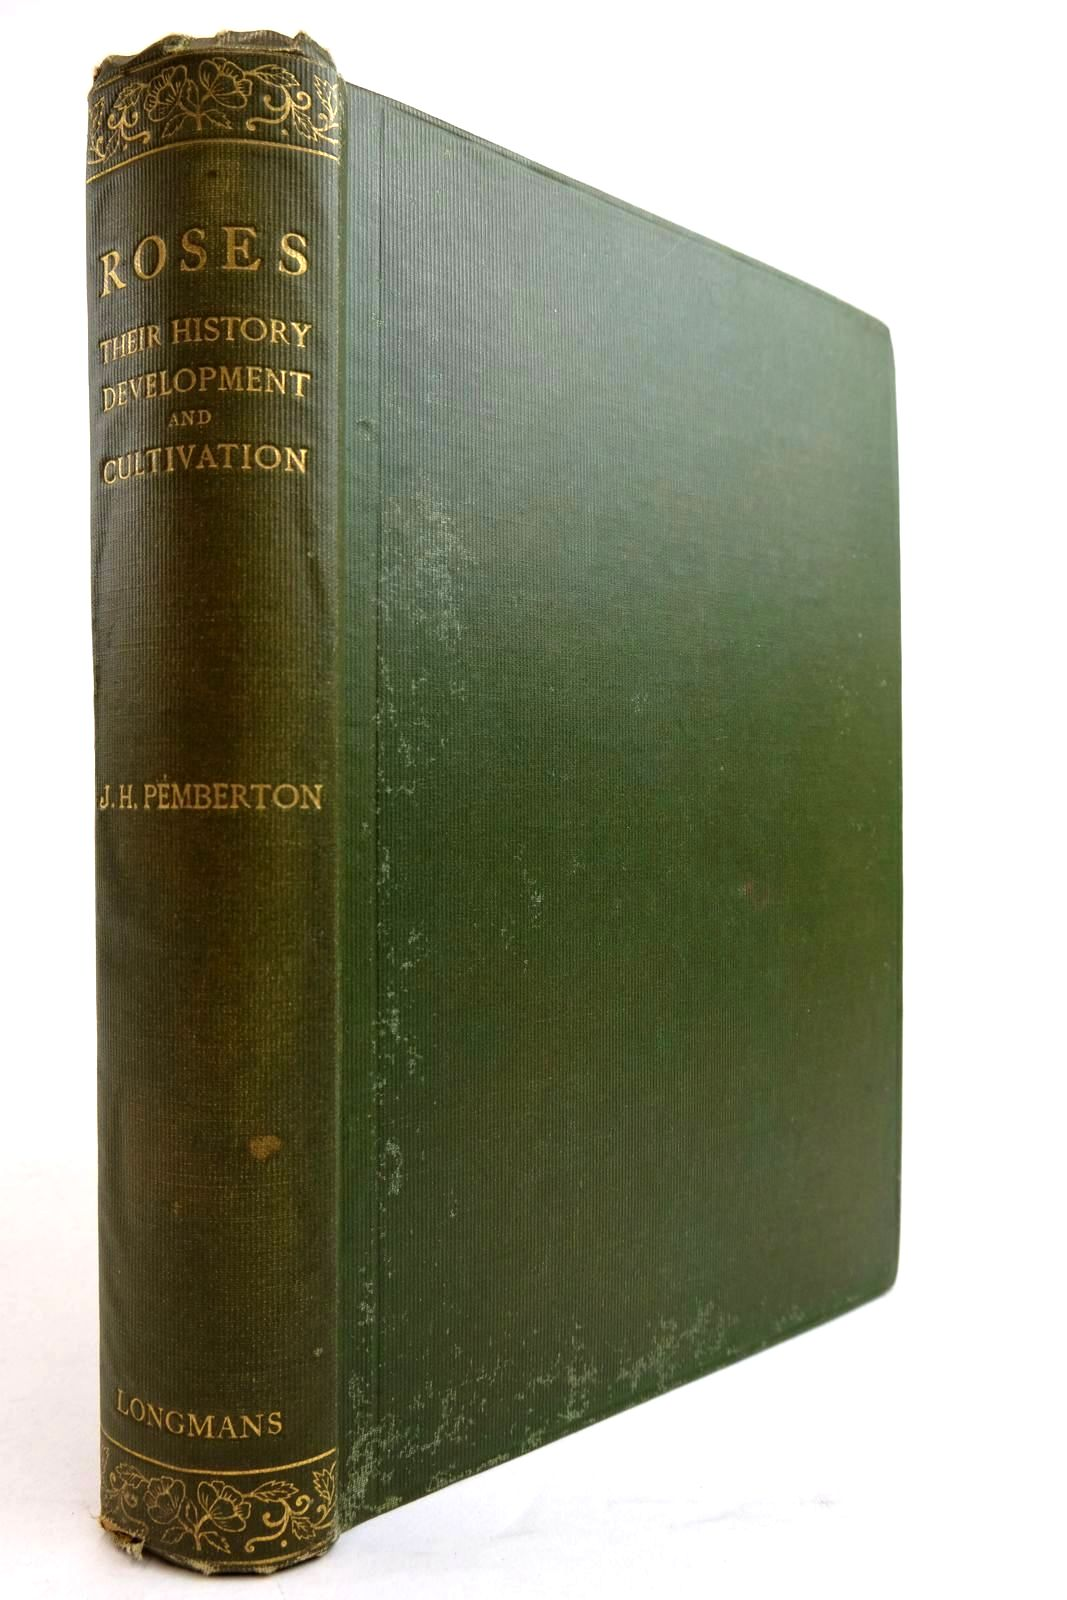 Photo of ROSES: THEIR HISTORY DEVELOPMENT AND CULTIVATION written by Pemberton, Joseph H. published by Longmans, Green & Co. (STOCK CODE: 2134341)  for sale by Stella & Rose's Books